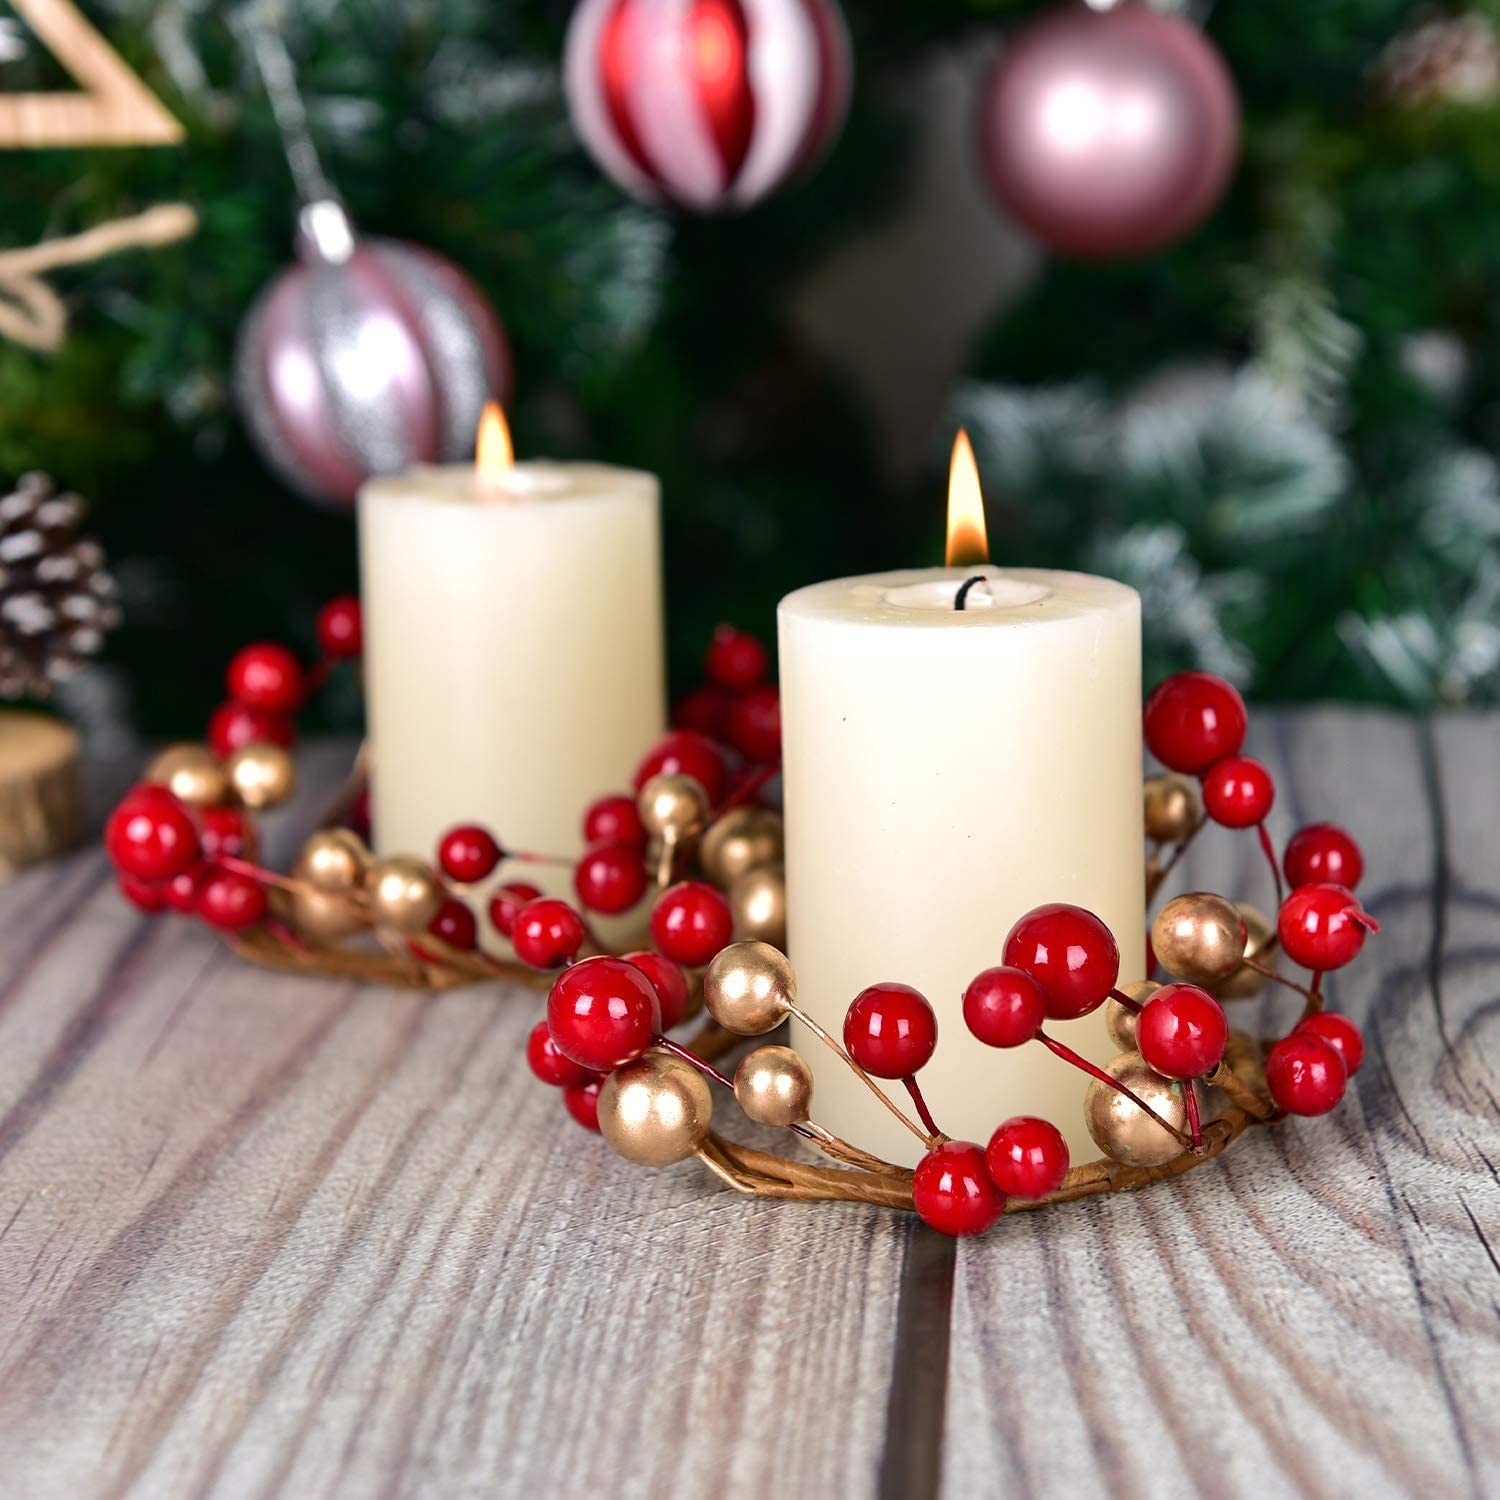 Decorative Glass Tealight Candle Holder for Home Living Room and Bedroom Decor DearHouse 6 Pcs Christmas Votive Candle Holder Rings with with Red Gold Berry Candle Ring Wedding